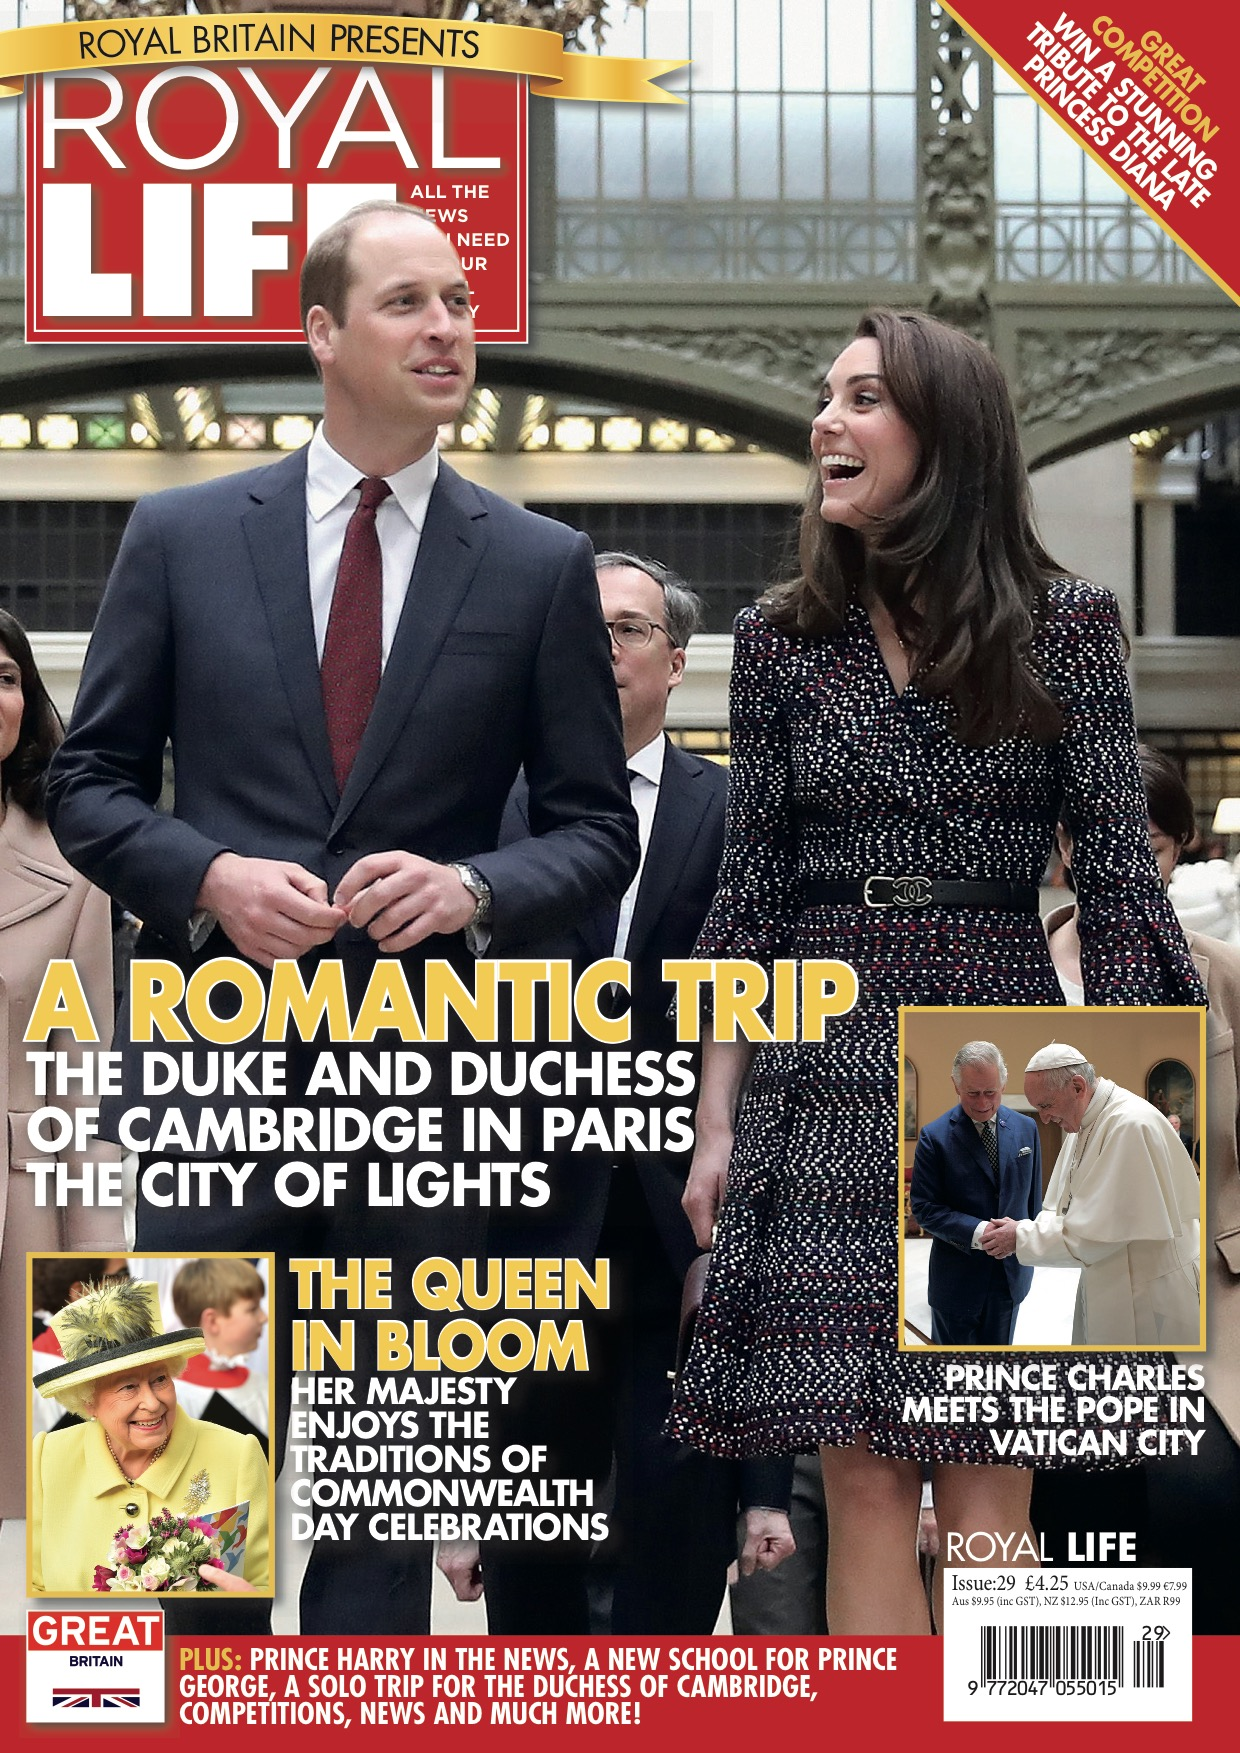 Royal Life Magazine - Issue 29